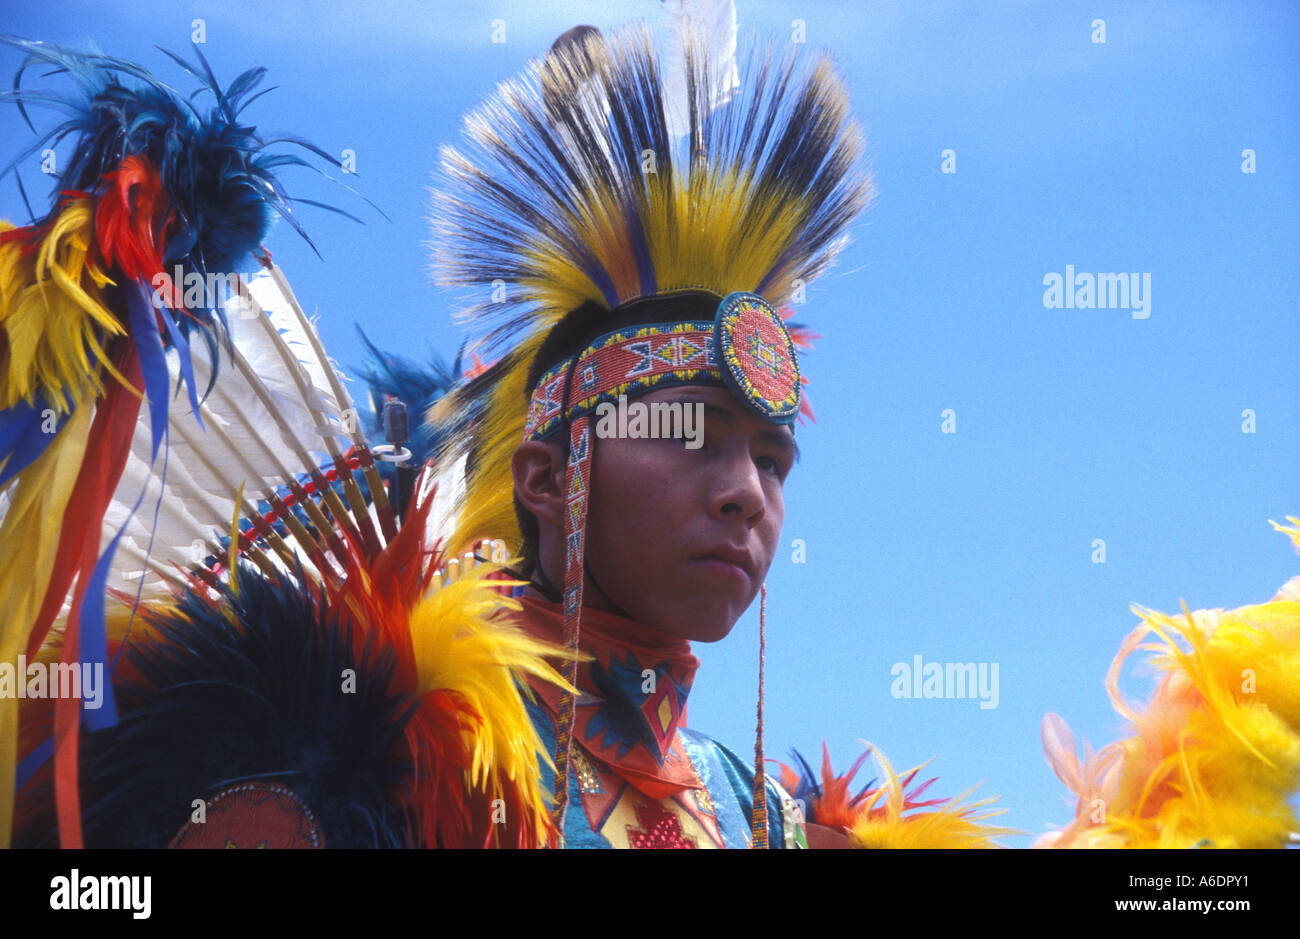 A young Sioux tribal member in traditional dress at a powwow in South Dakota - Stock Image